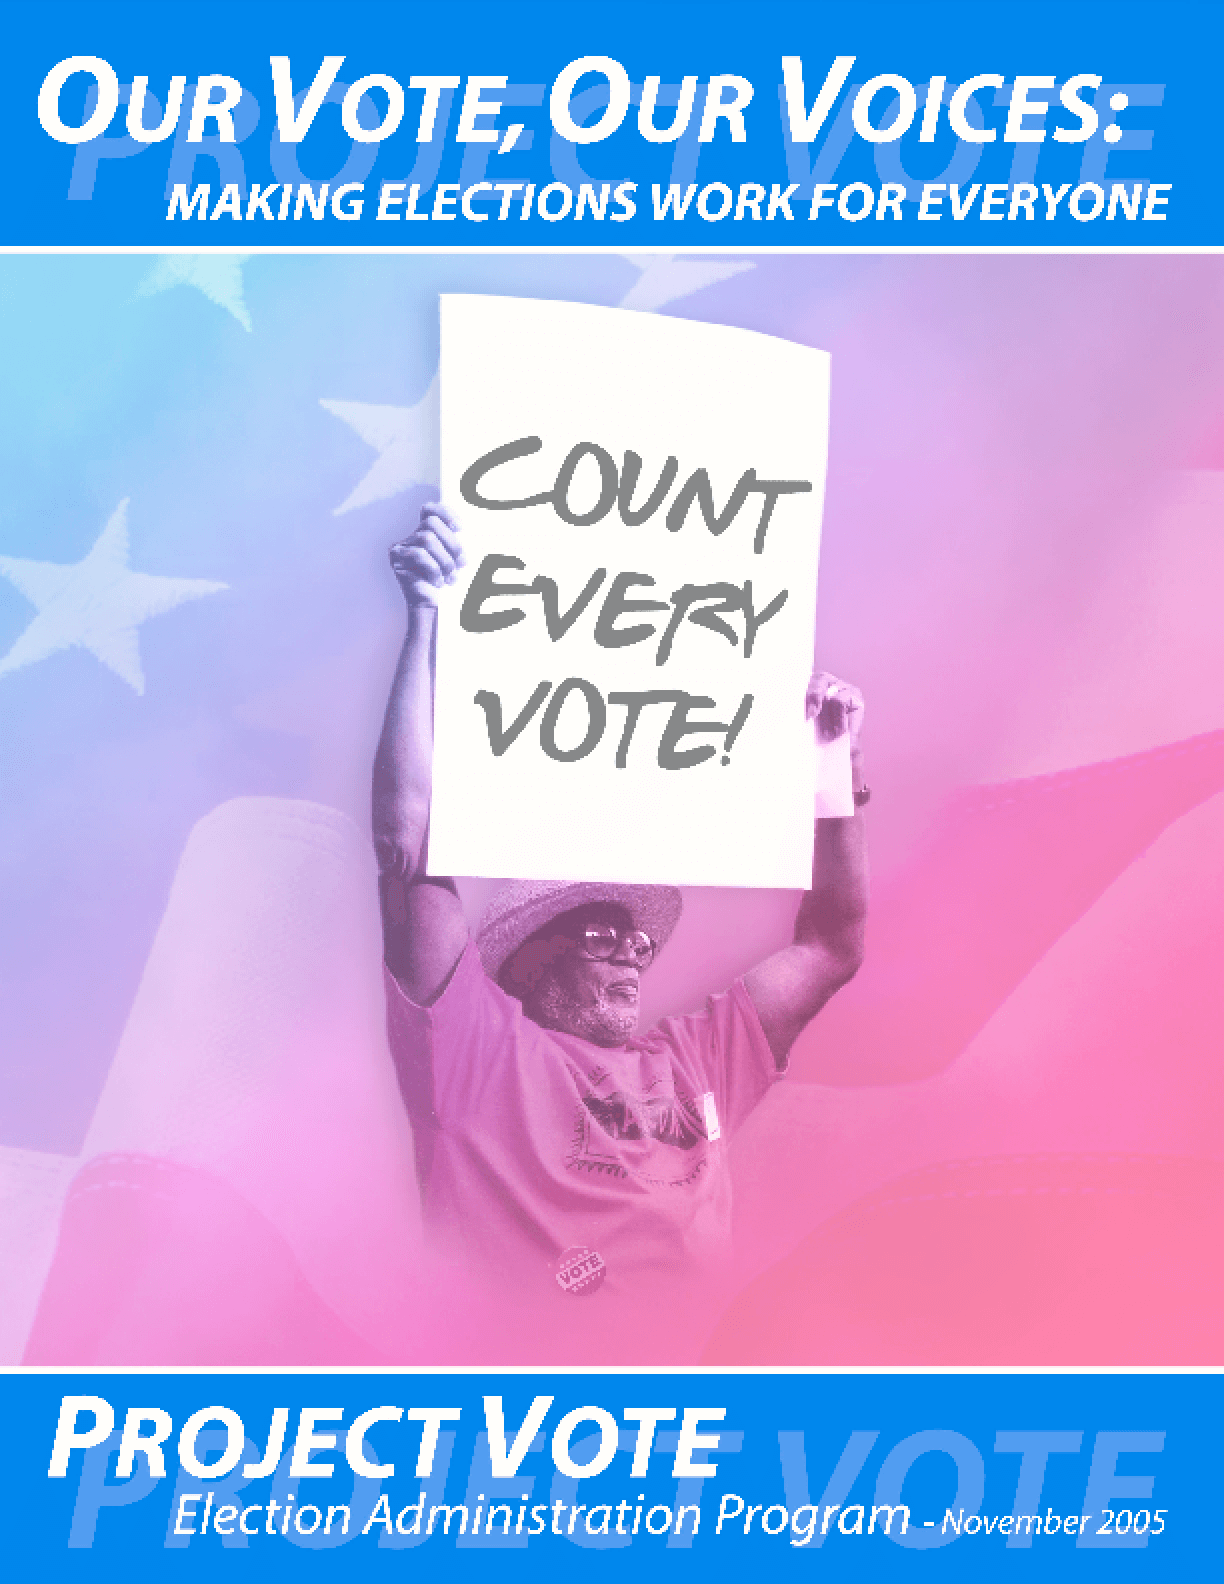 Our Vote, Our Voices: Making Elections Work For Everyone